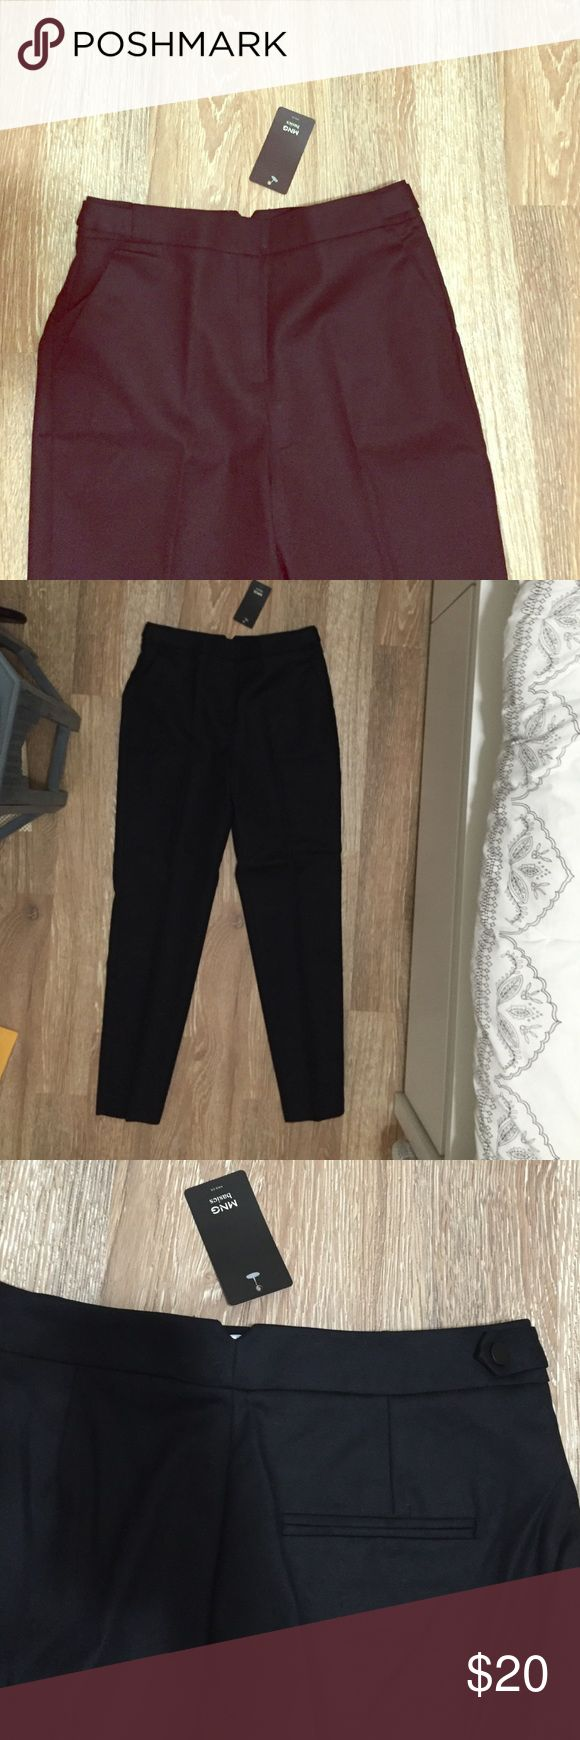 NWT Mango Trousers These black Mango trousers are perfect for day-to-night work outfits. They have side tabs with black buttons and front zip fly. These tailored pants would be perfect with pumps or strappy sandals. Mango Pants Trousers